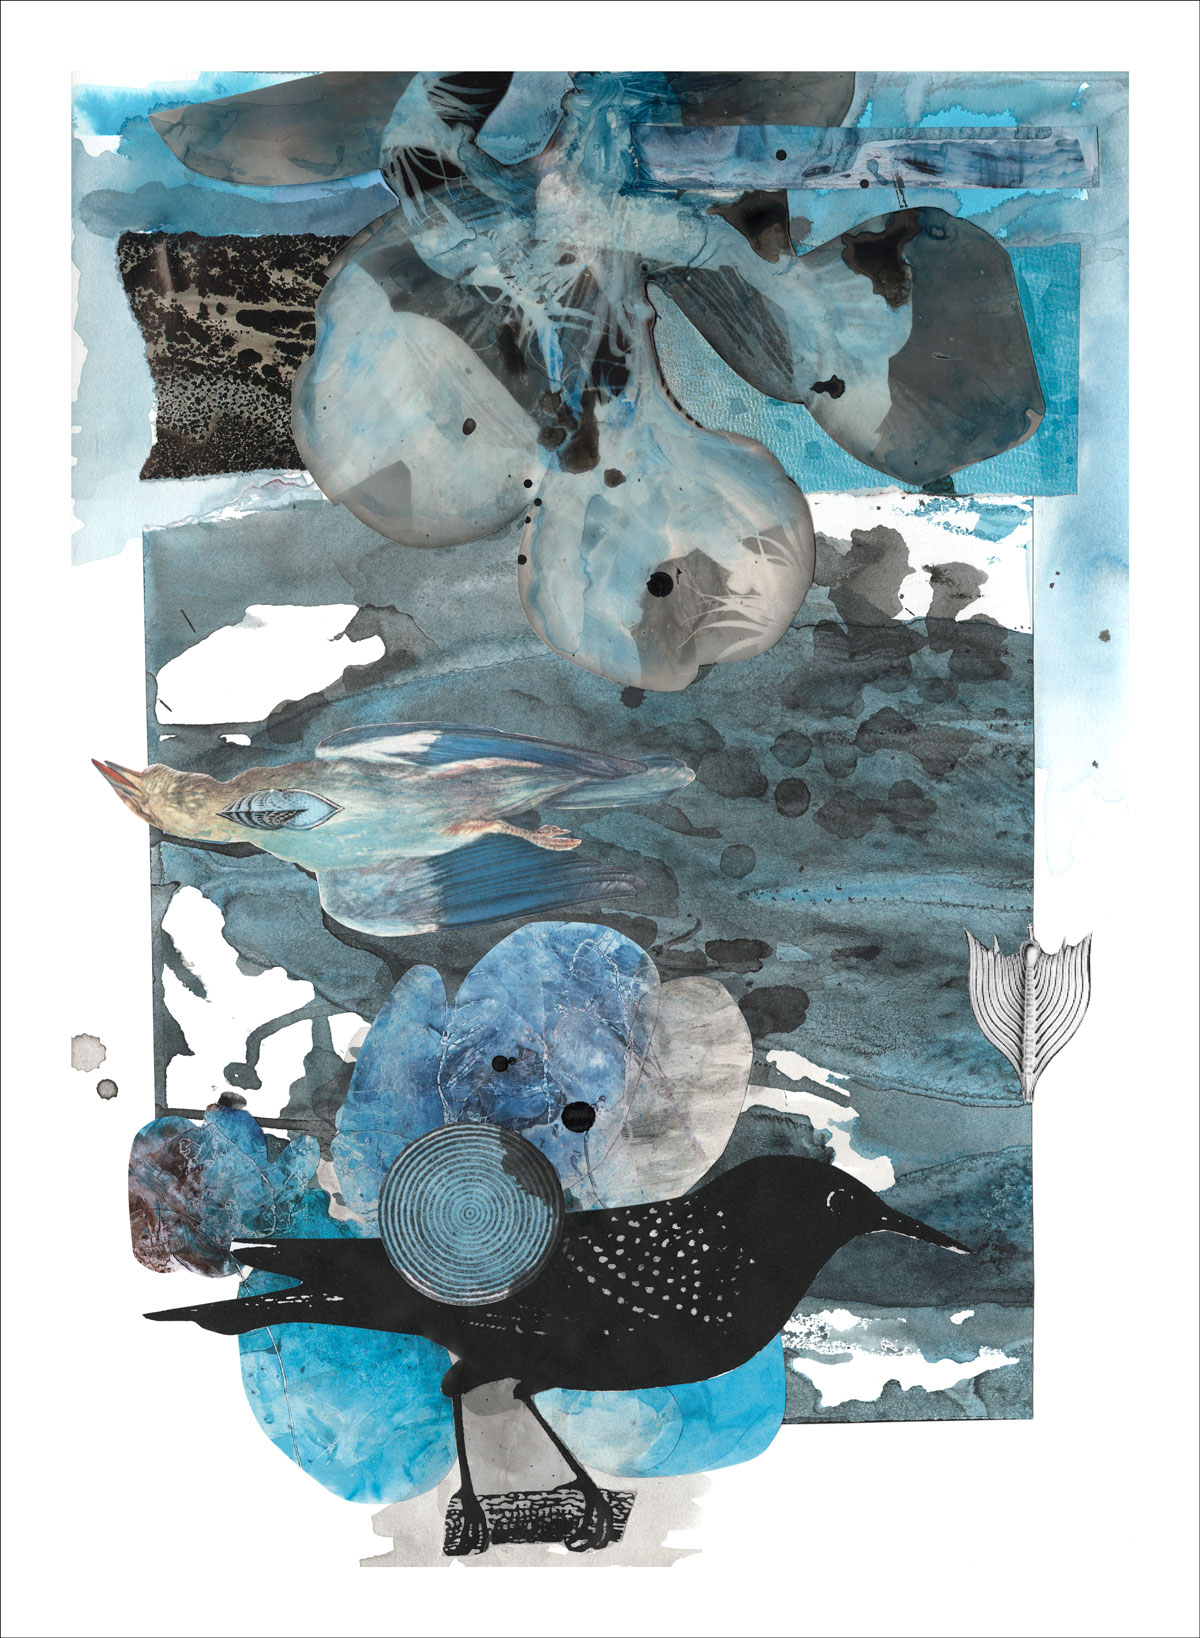 Finding Ourselves in the Blue - mixed media collage print by Dominique Hazell